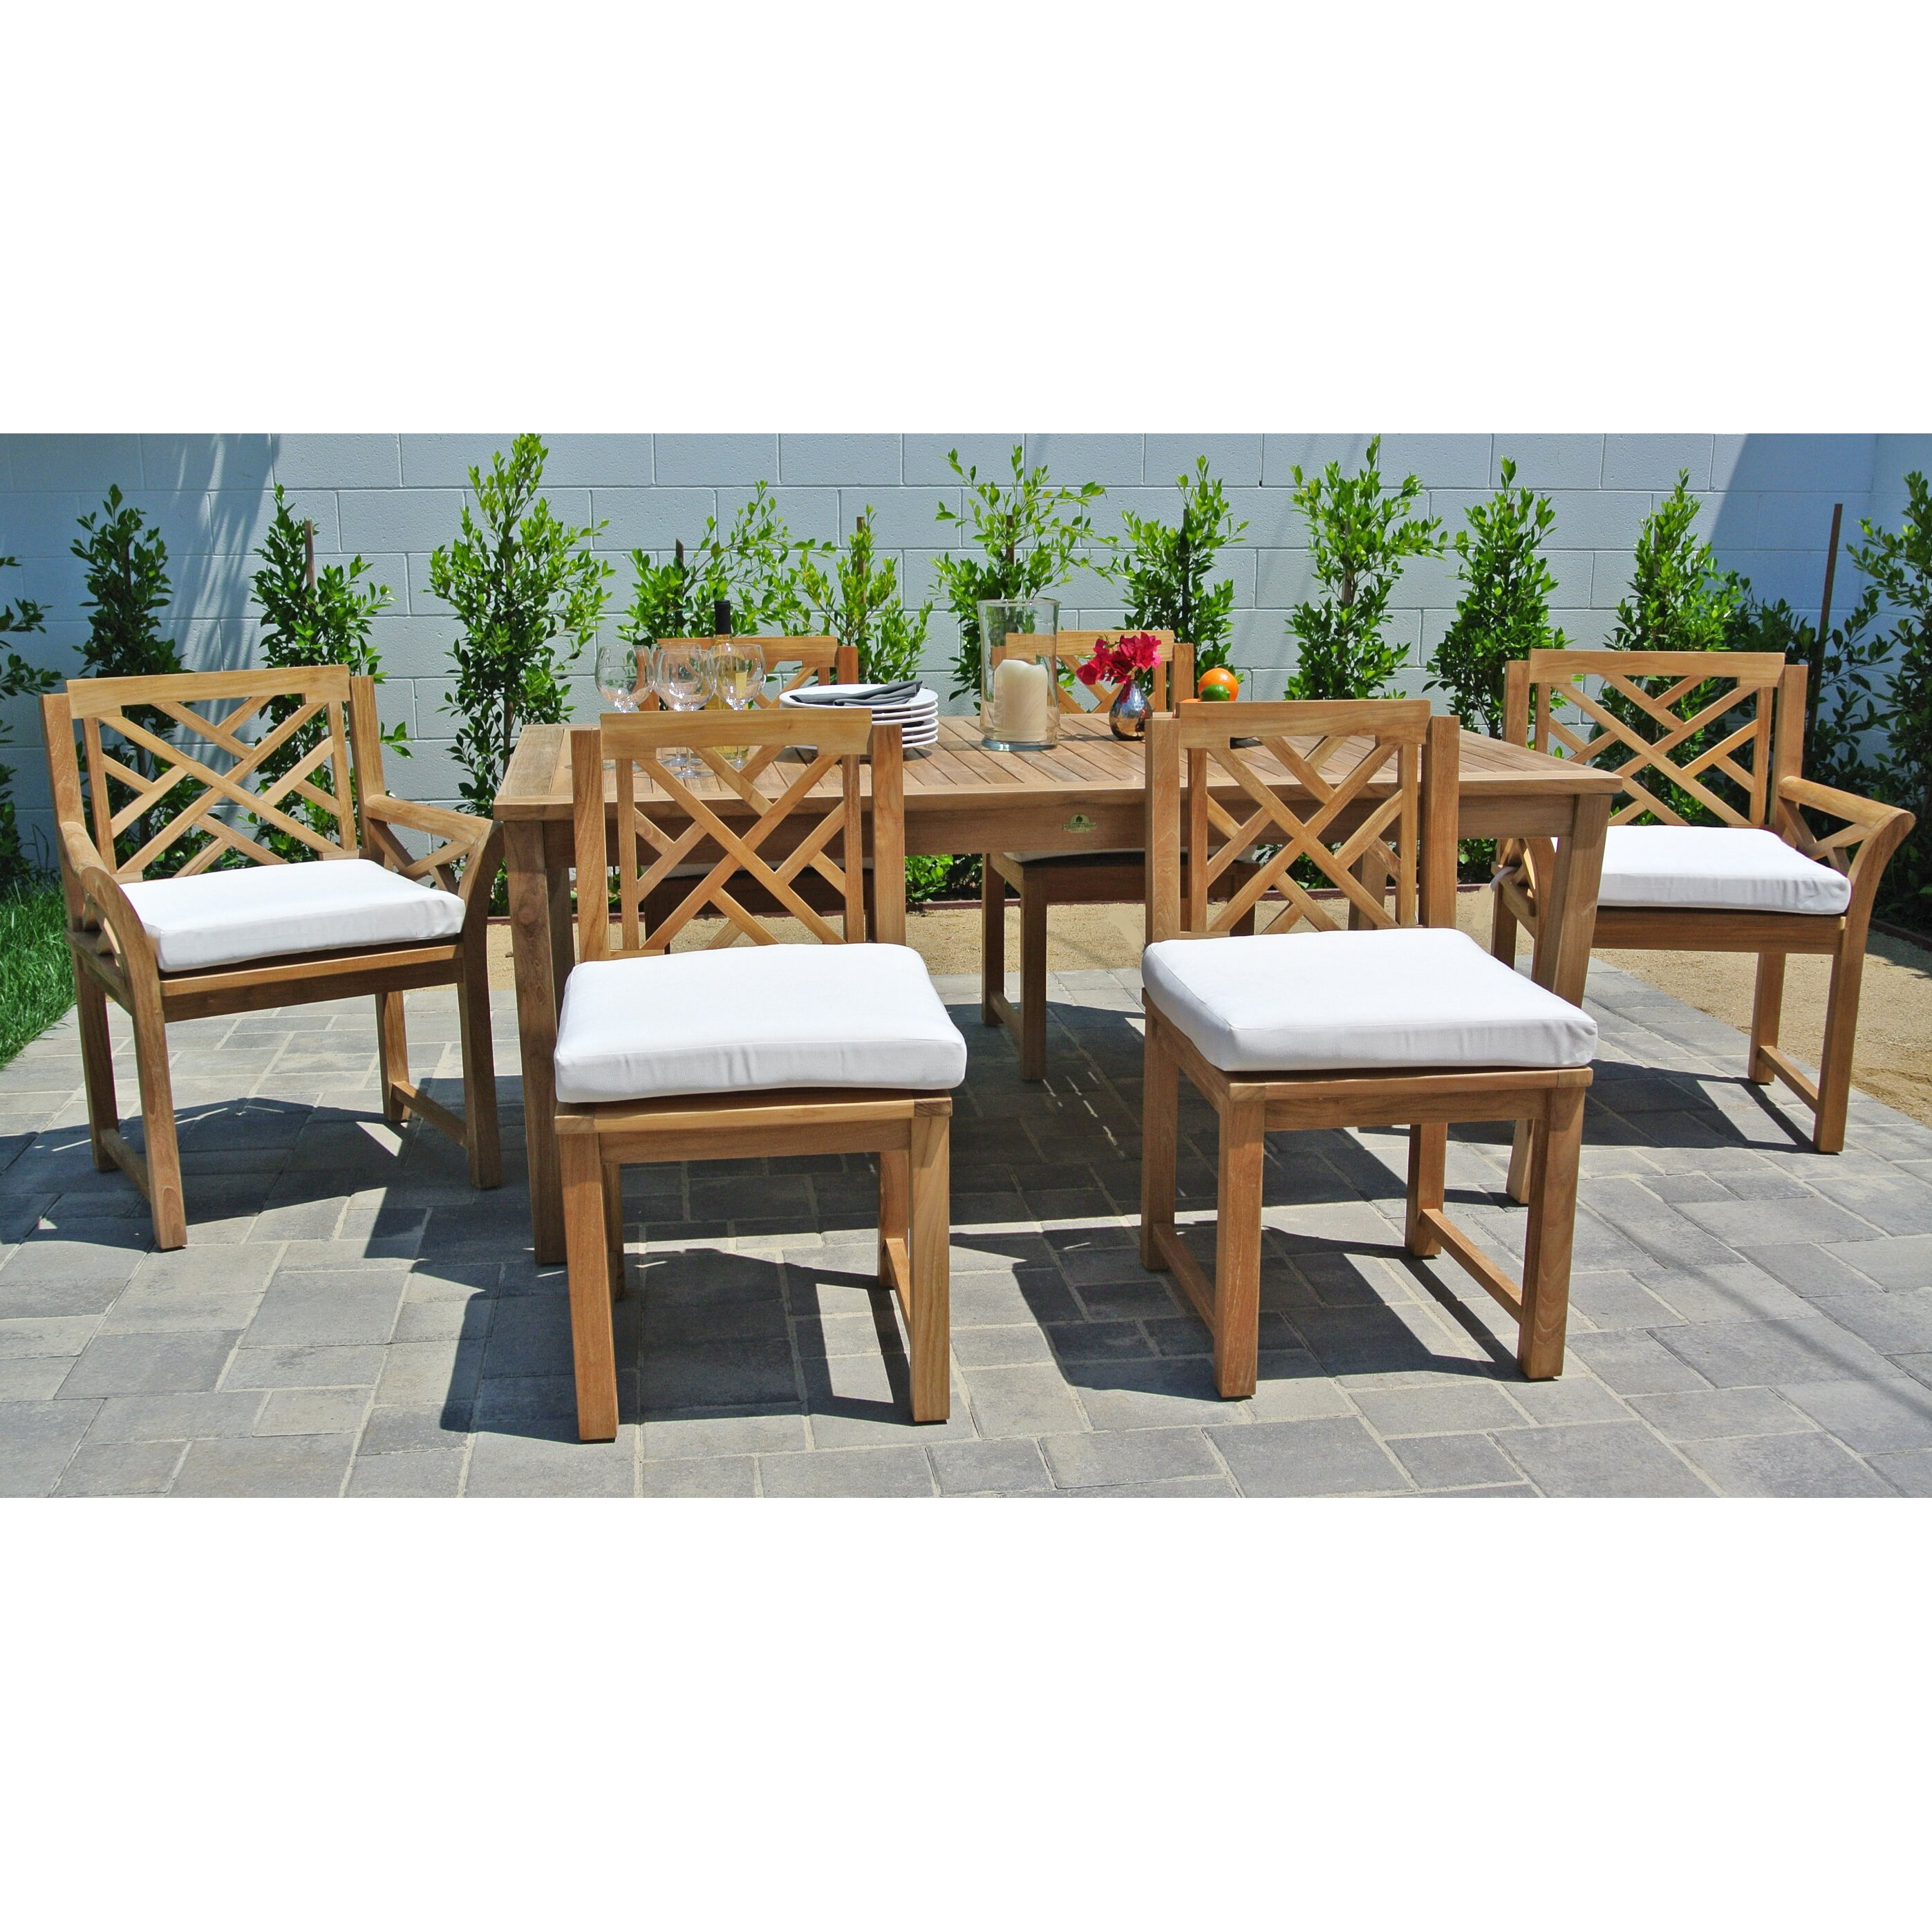 Willow creek designs monterey 7 piece dining set wayfair for Willow creek designs